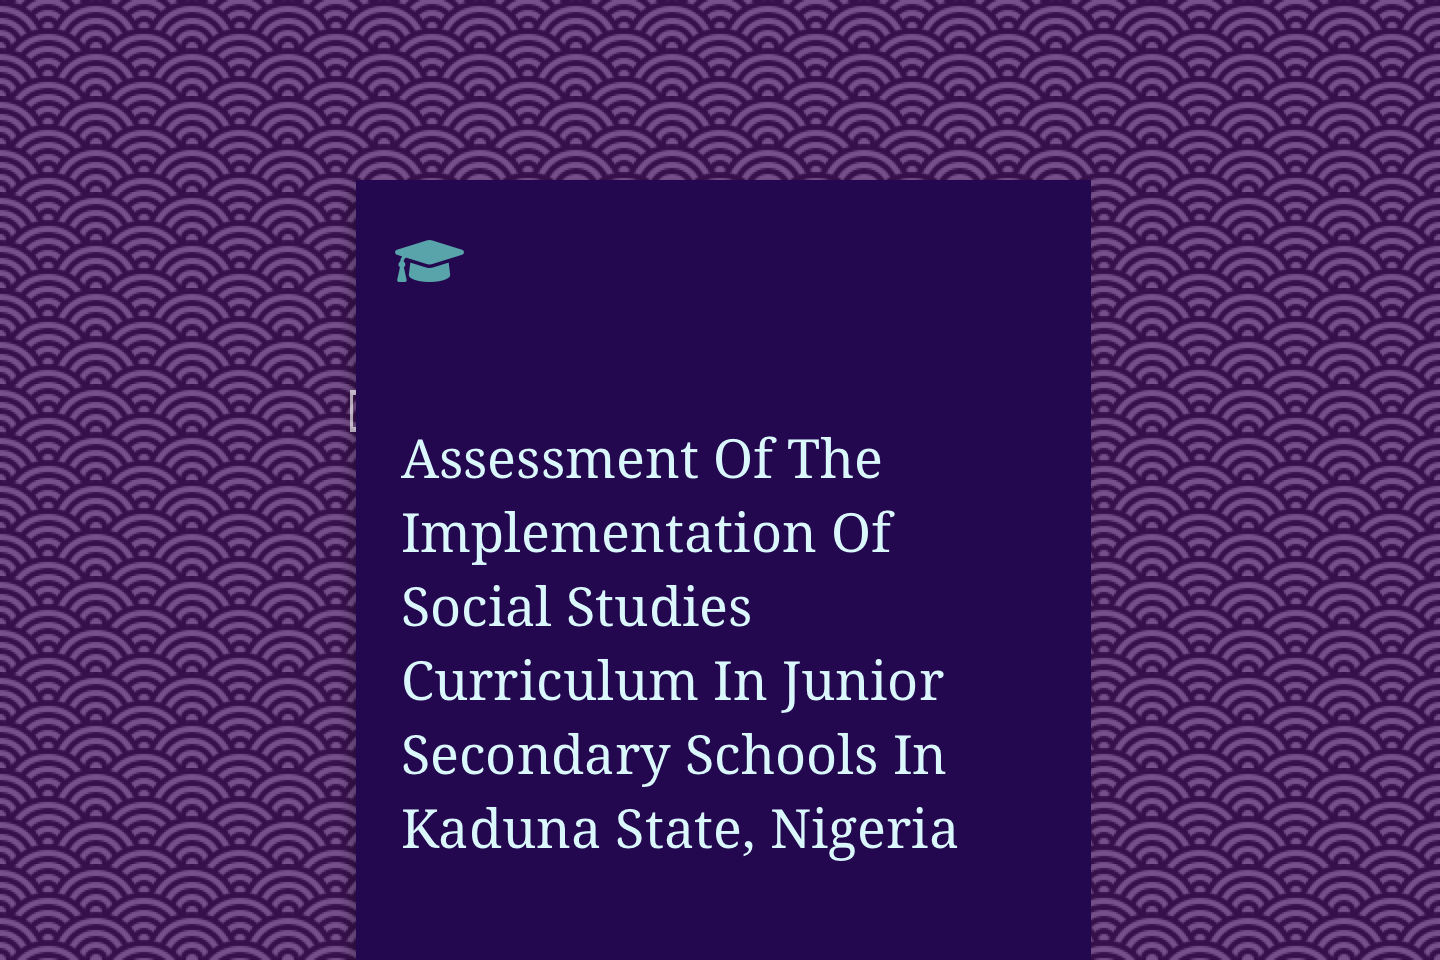 Assessment Of The Implementation Of Social Studies Curriculum In Junior Secondary Schools In Kaduna State, Nigeria